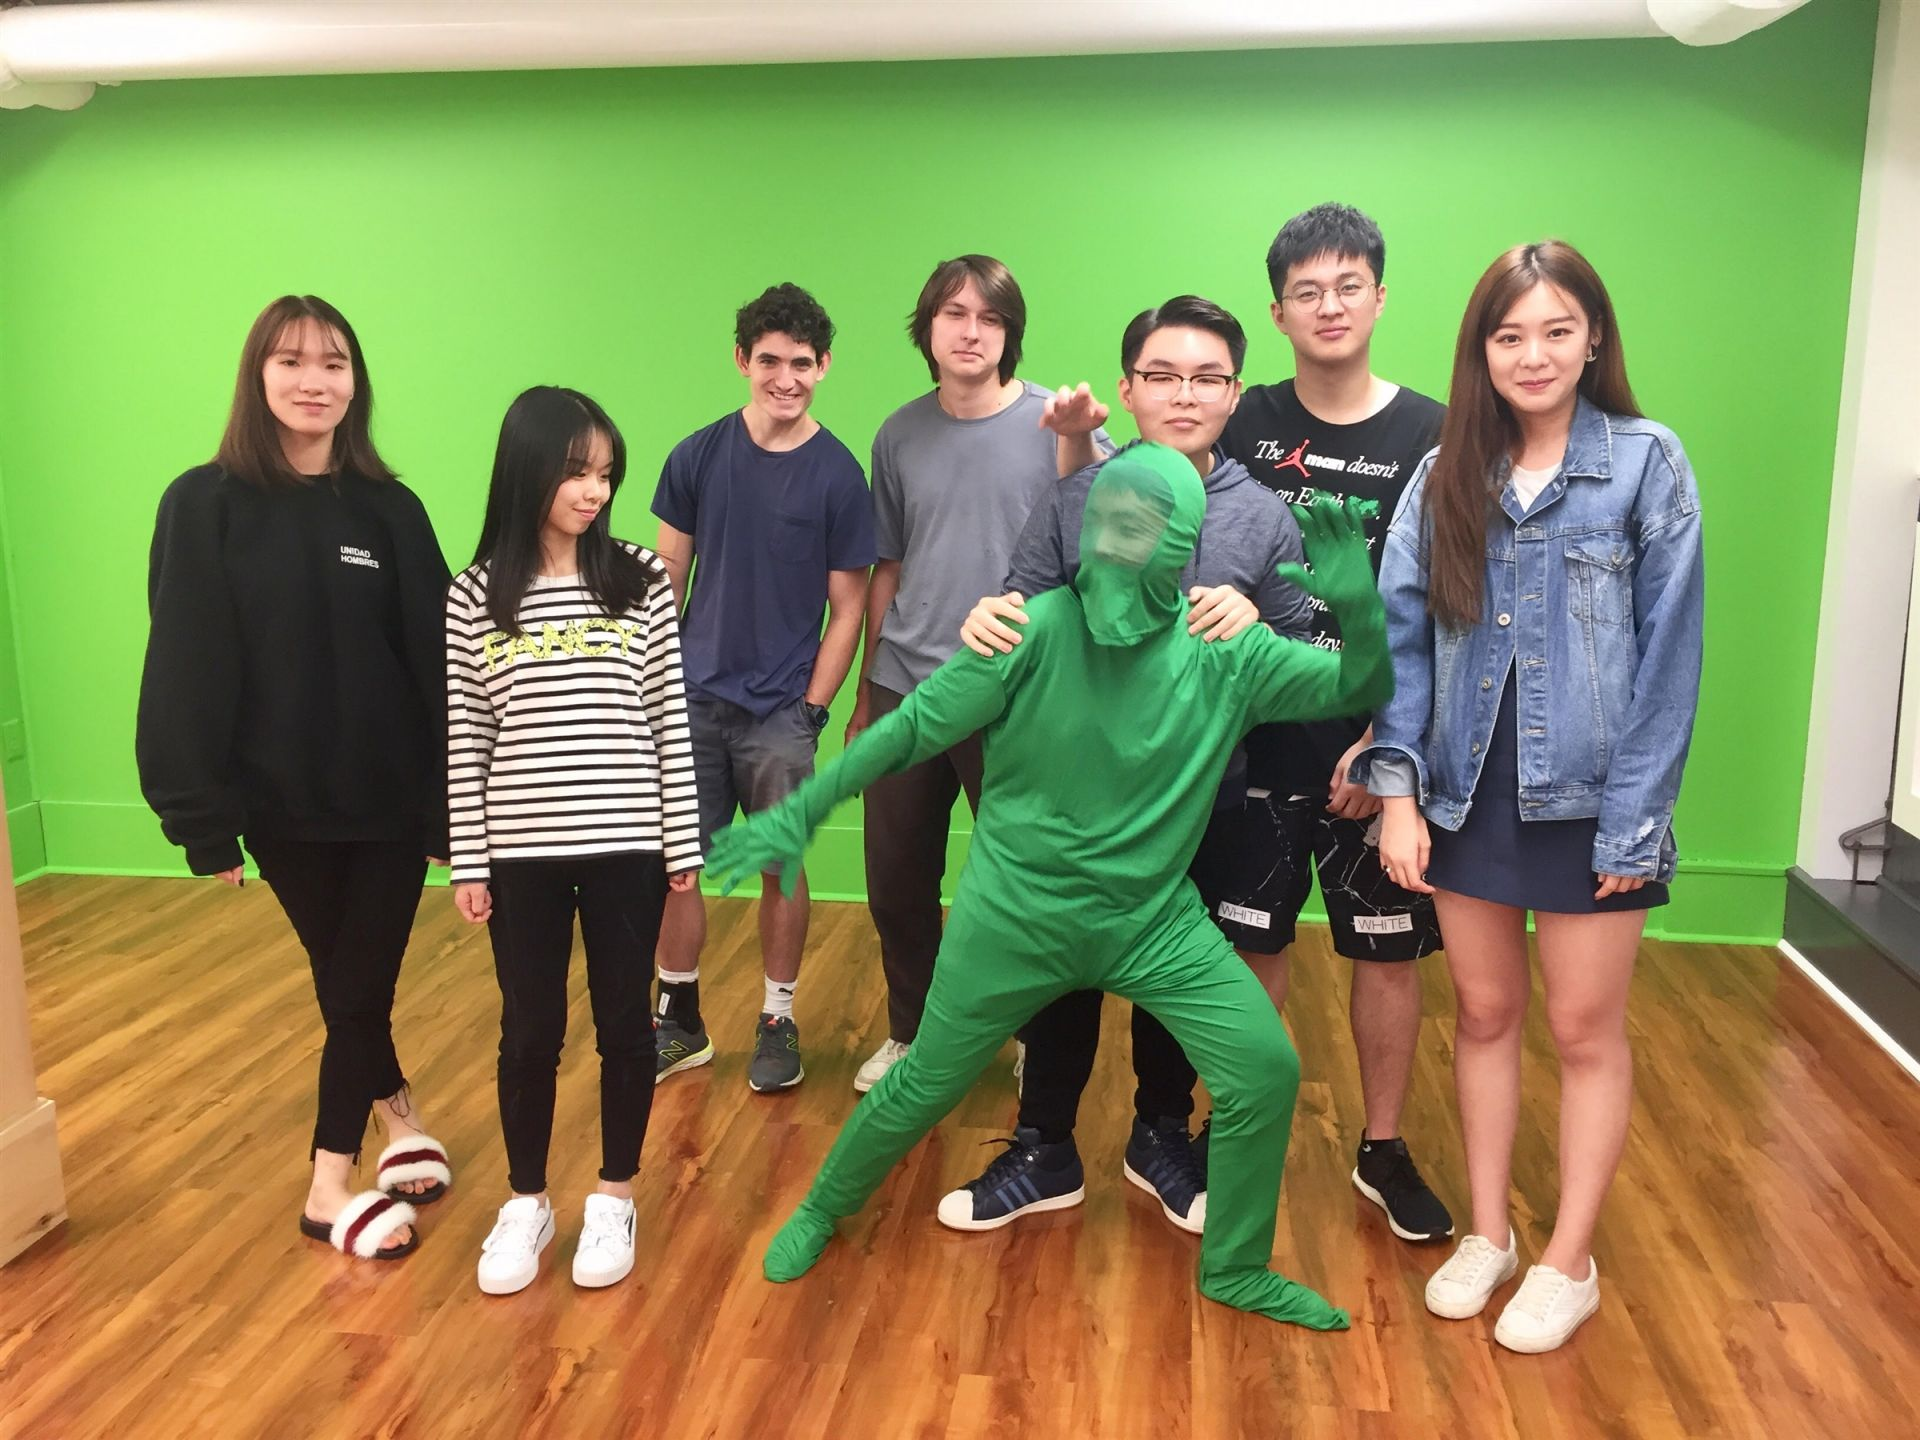 Filmmaking students standing in front of the wall-to-ceiling green screen.